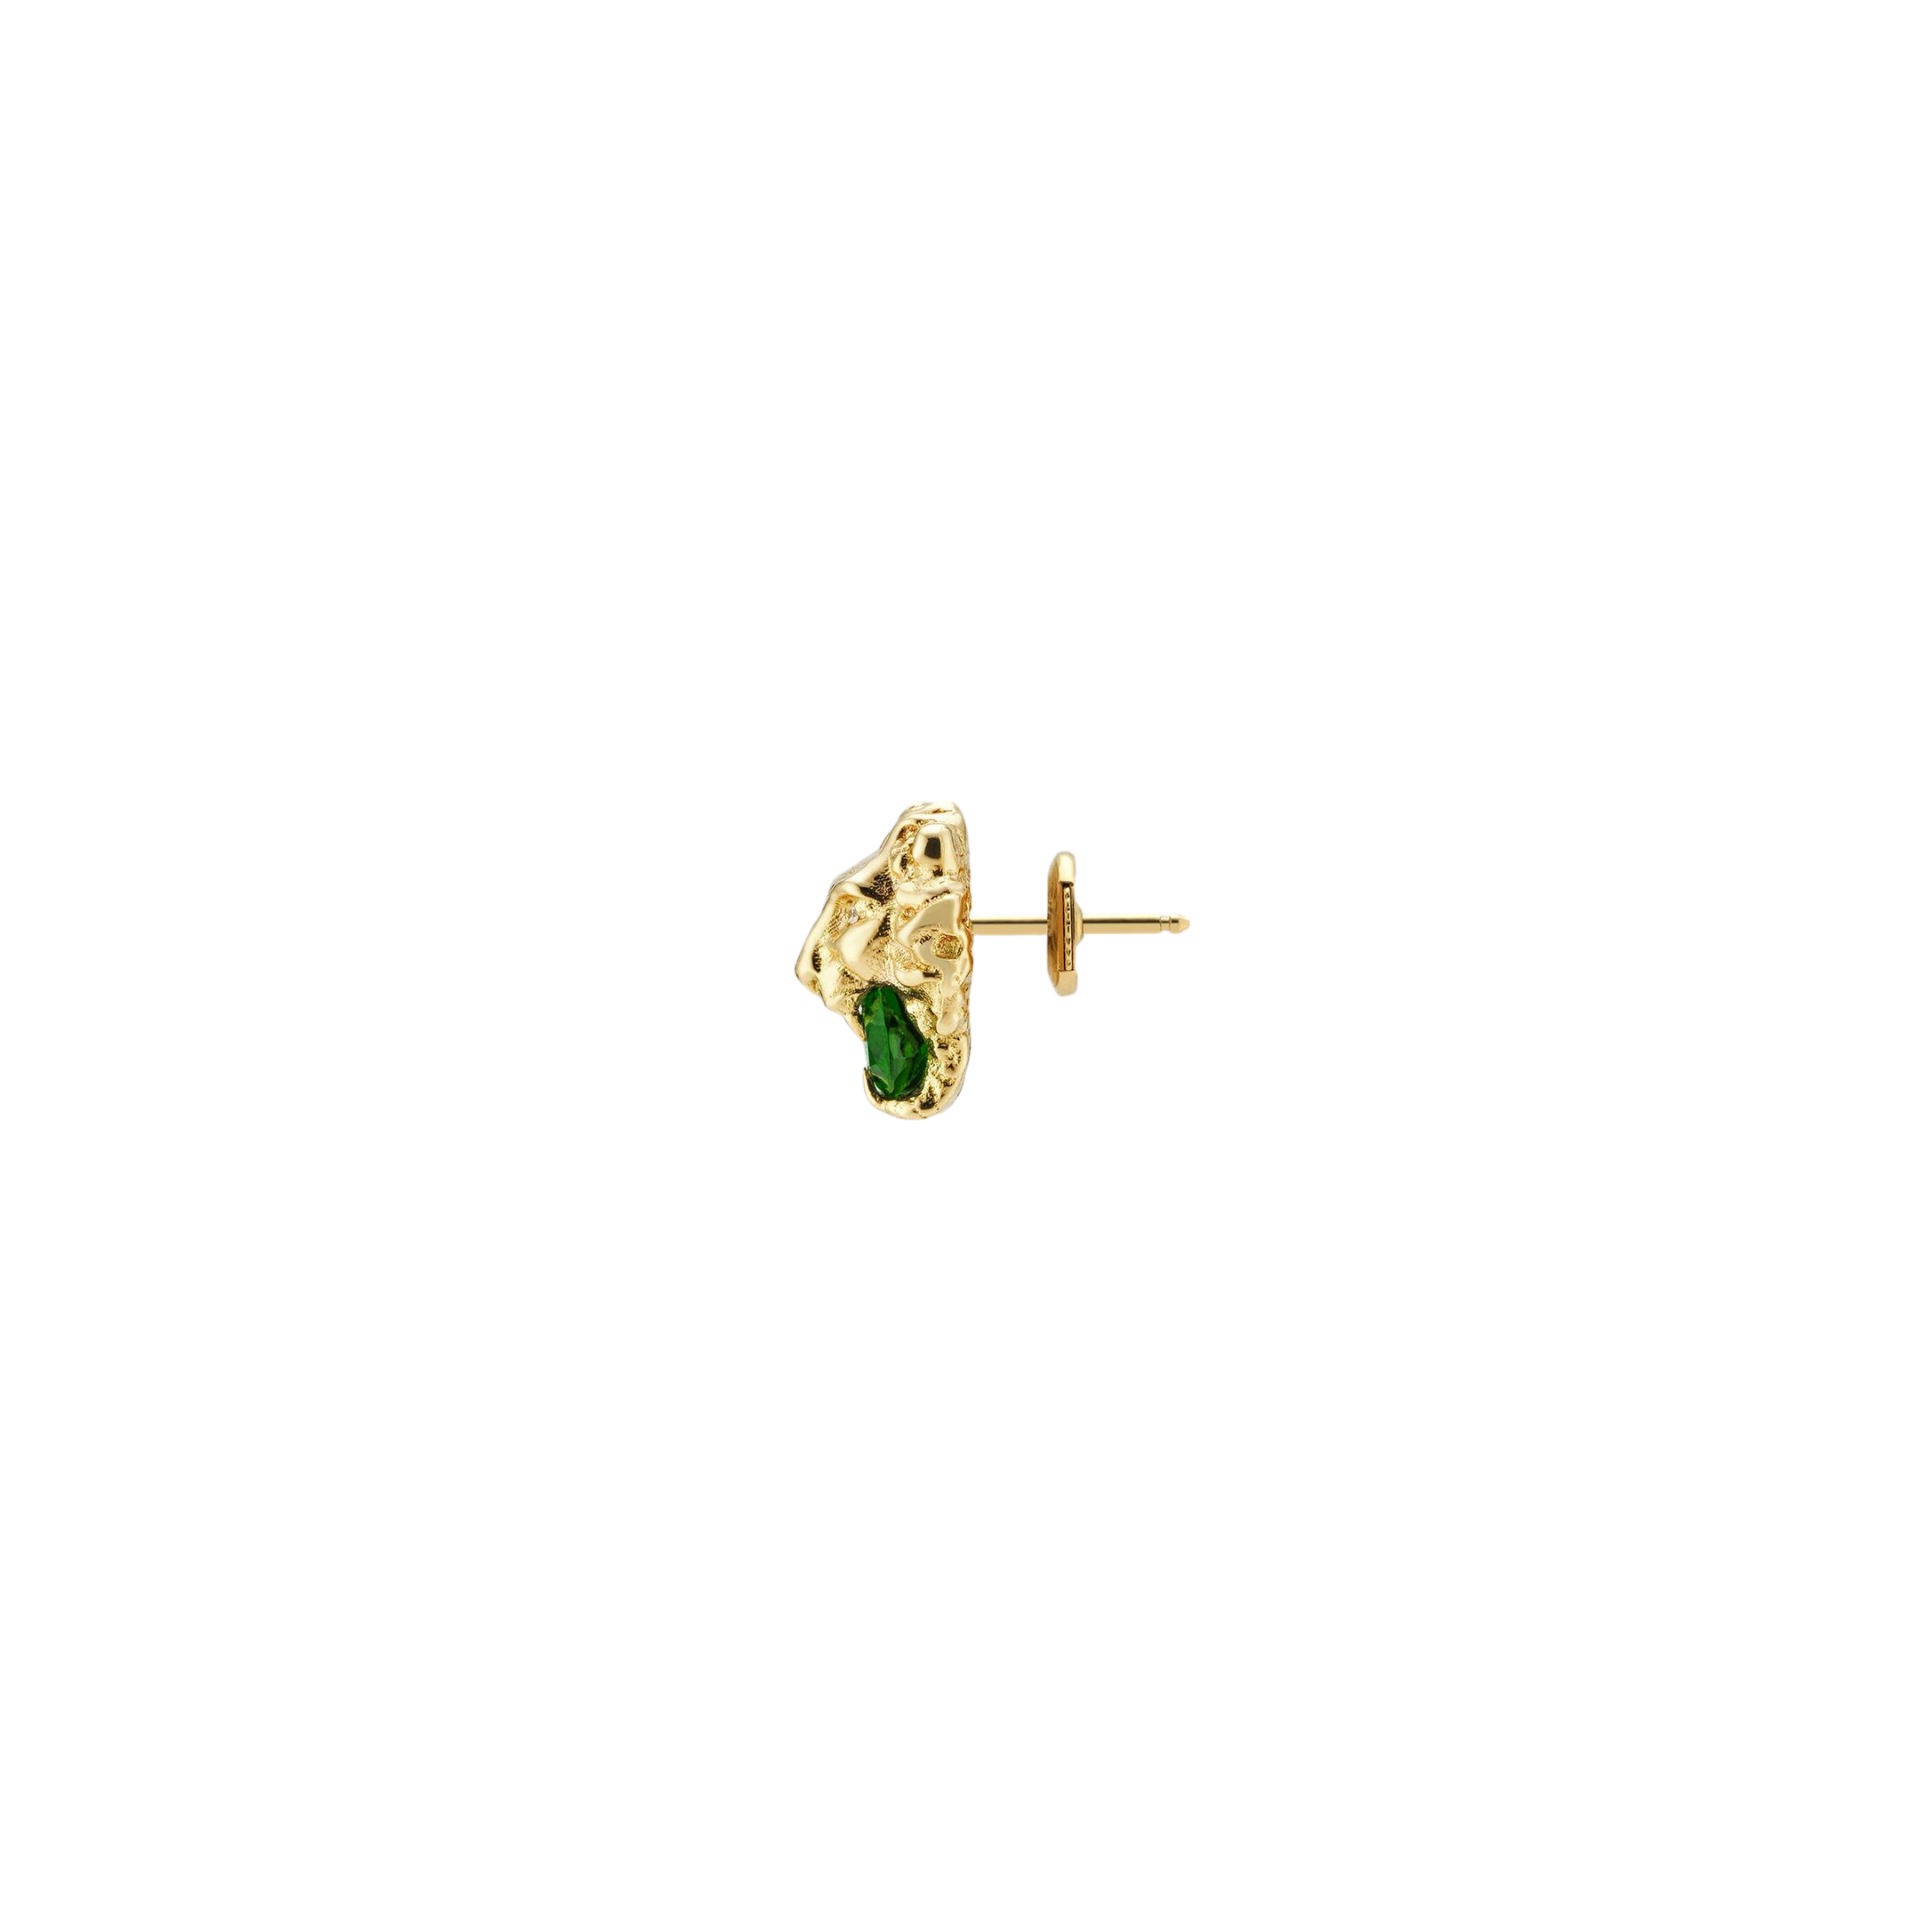 Lionhead Stud Earrings in 18k Yellow Gold with Green Diopside and Diamonds - Orsini Jewellers NZ